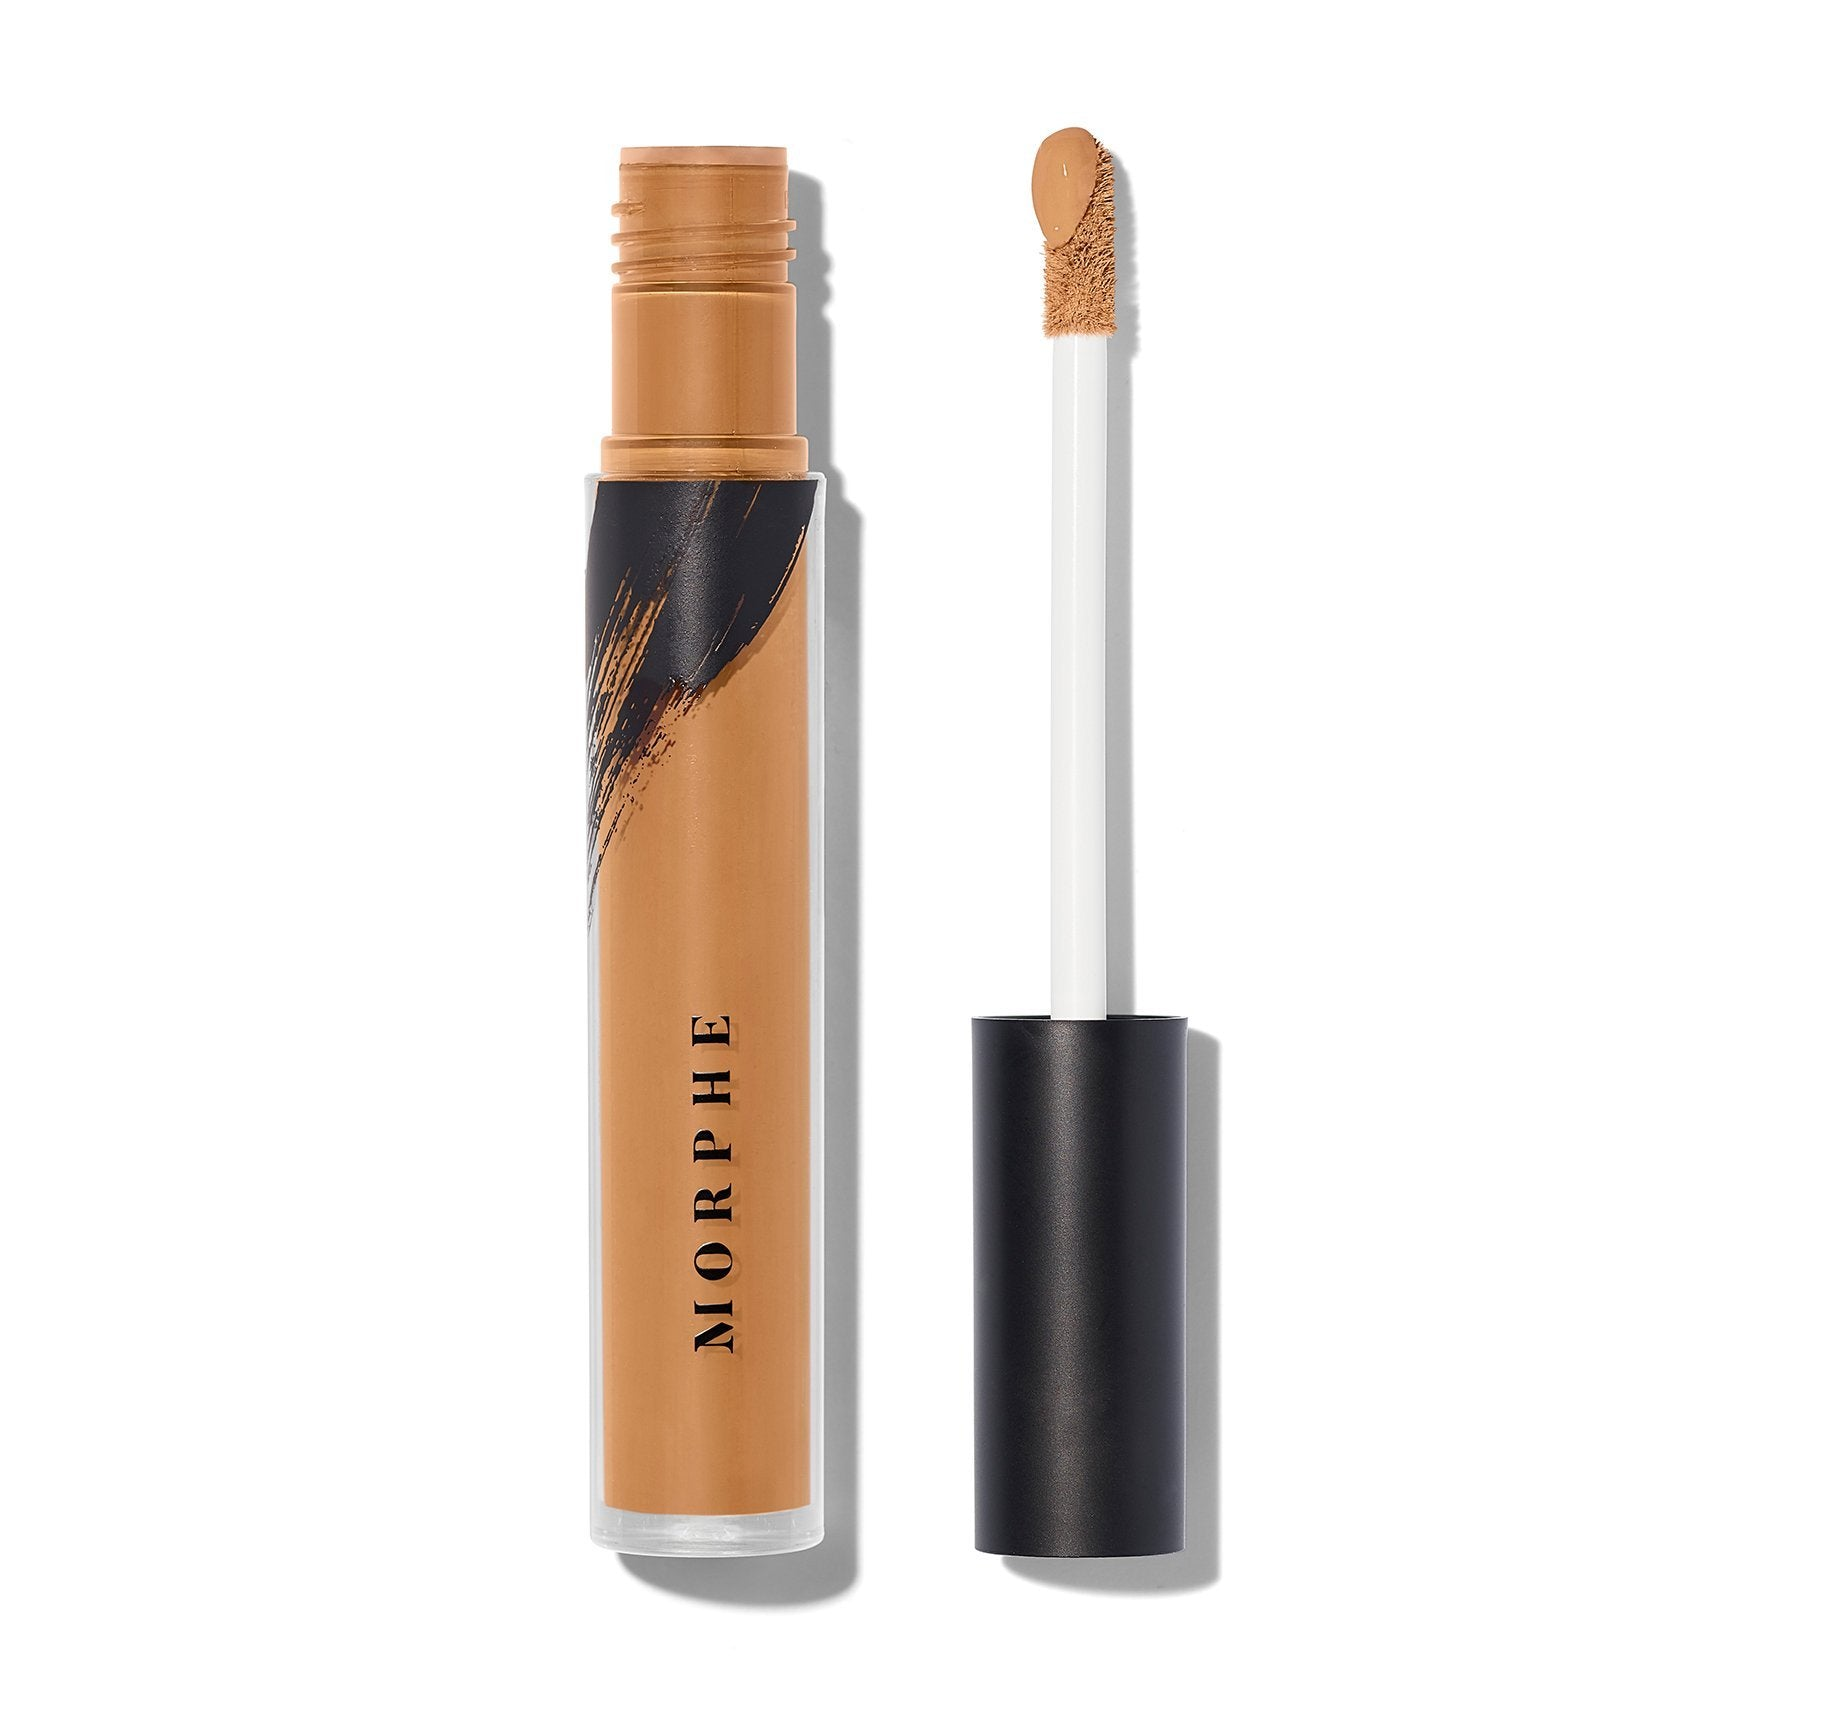 FLUIDITY FULL-COVERAGE CONCEALER - C3.35, view larger image